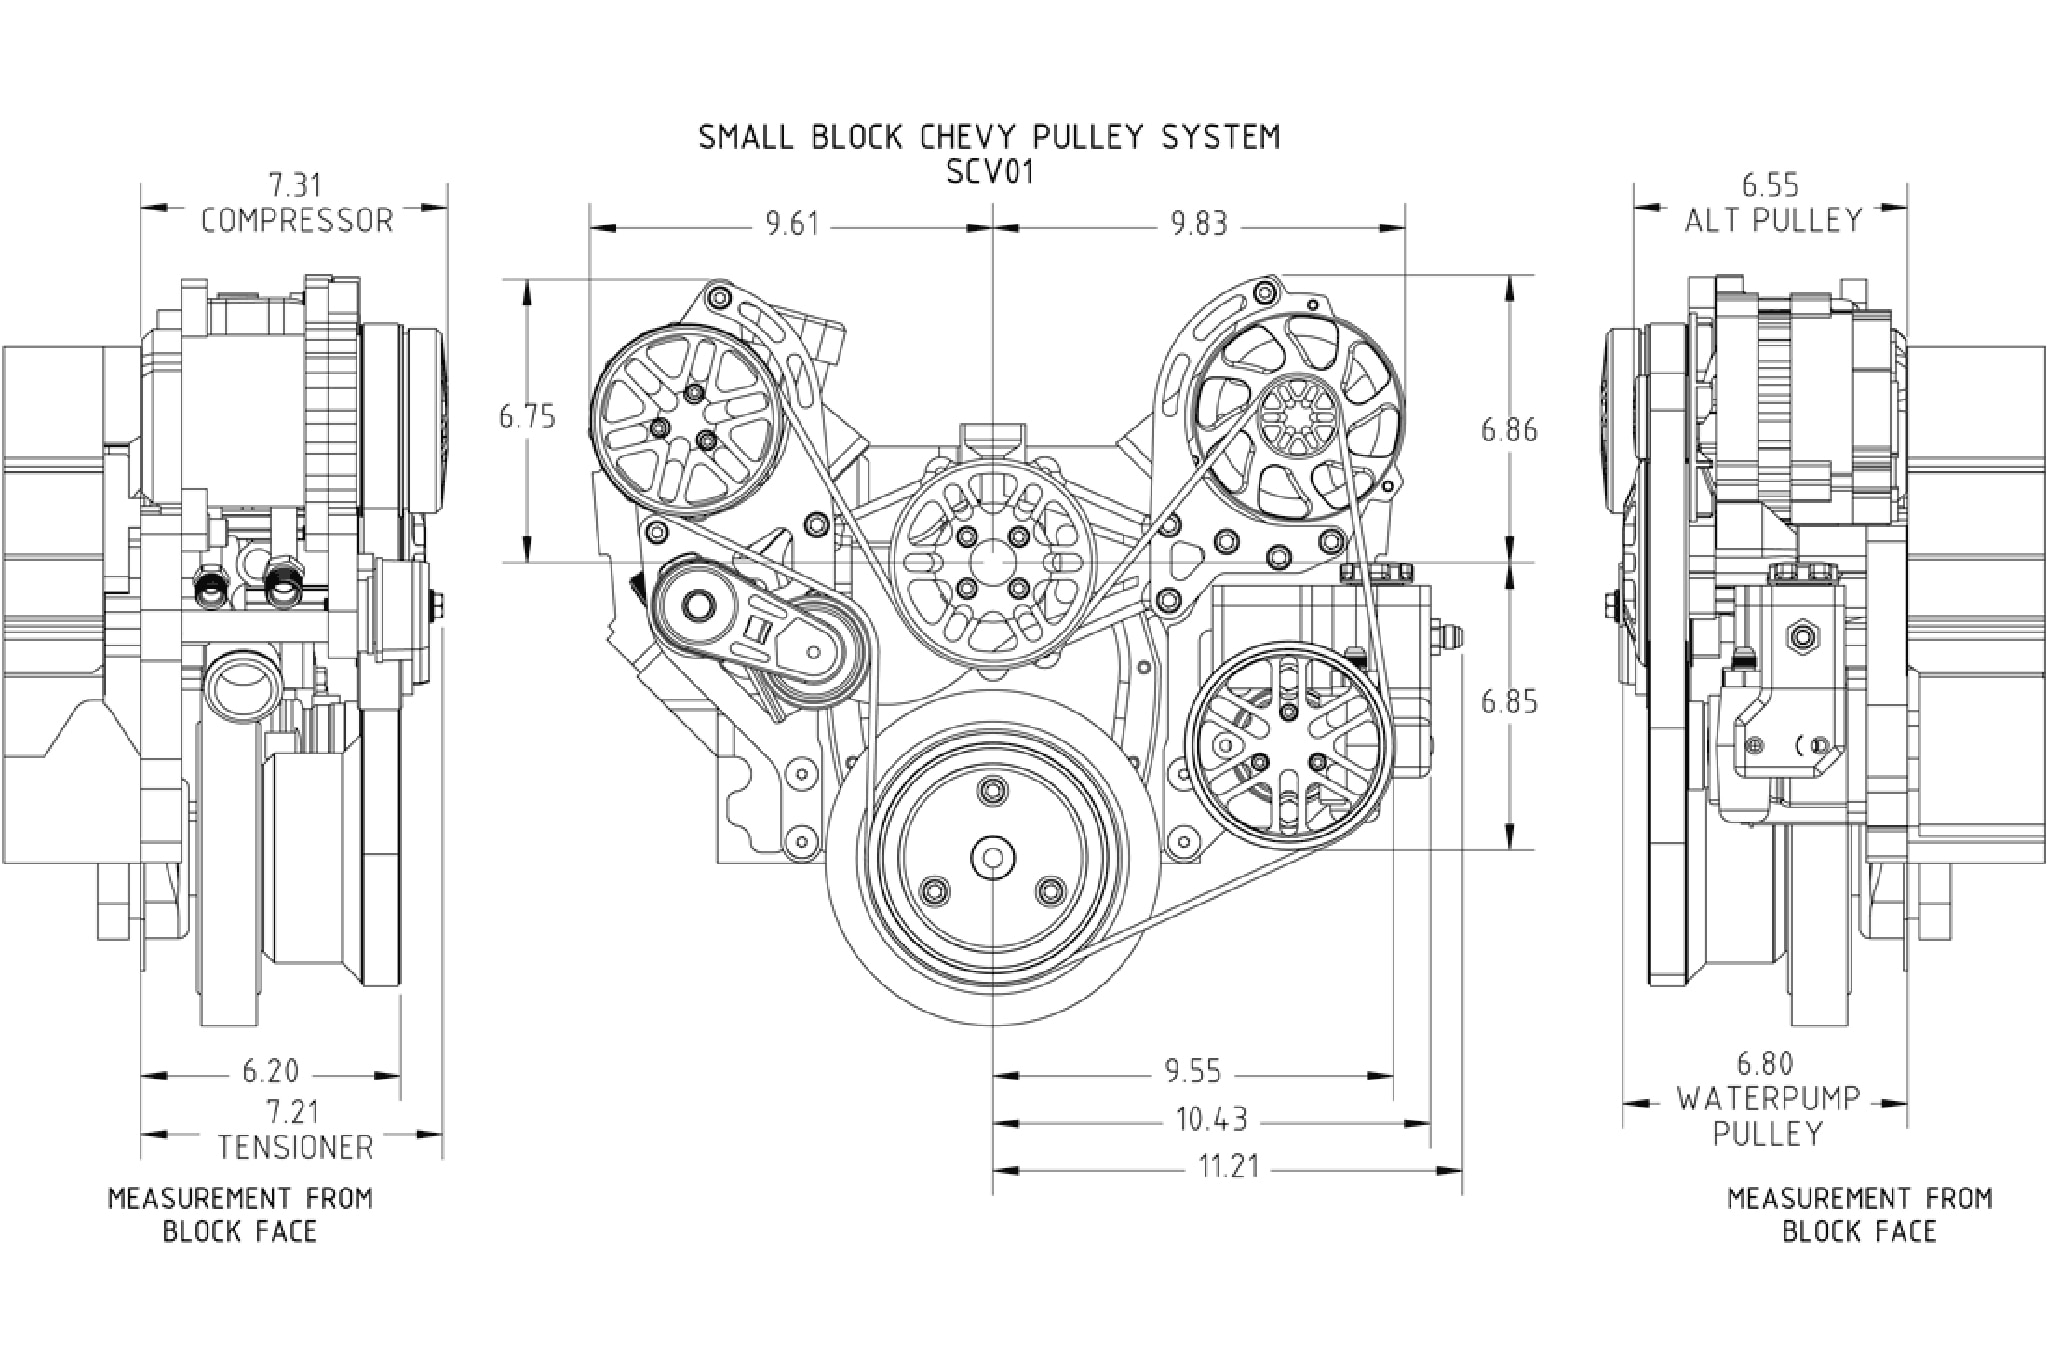 Modernizing A Small Block Chevy With A Concept One Pulley System